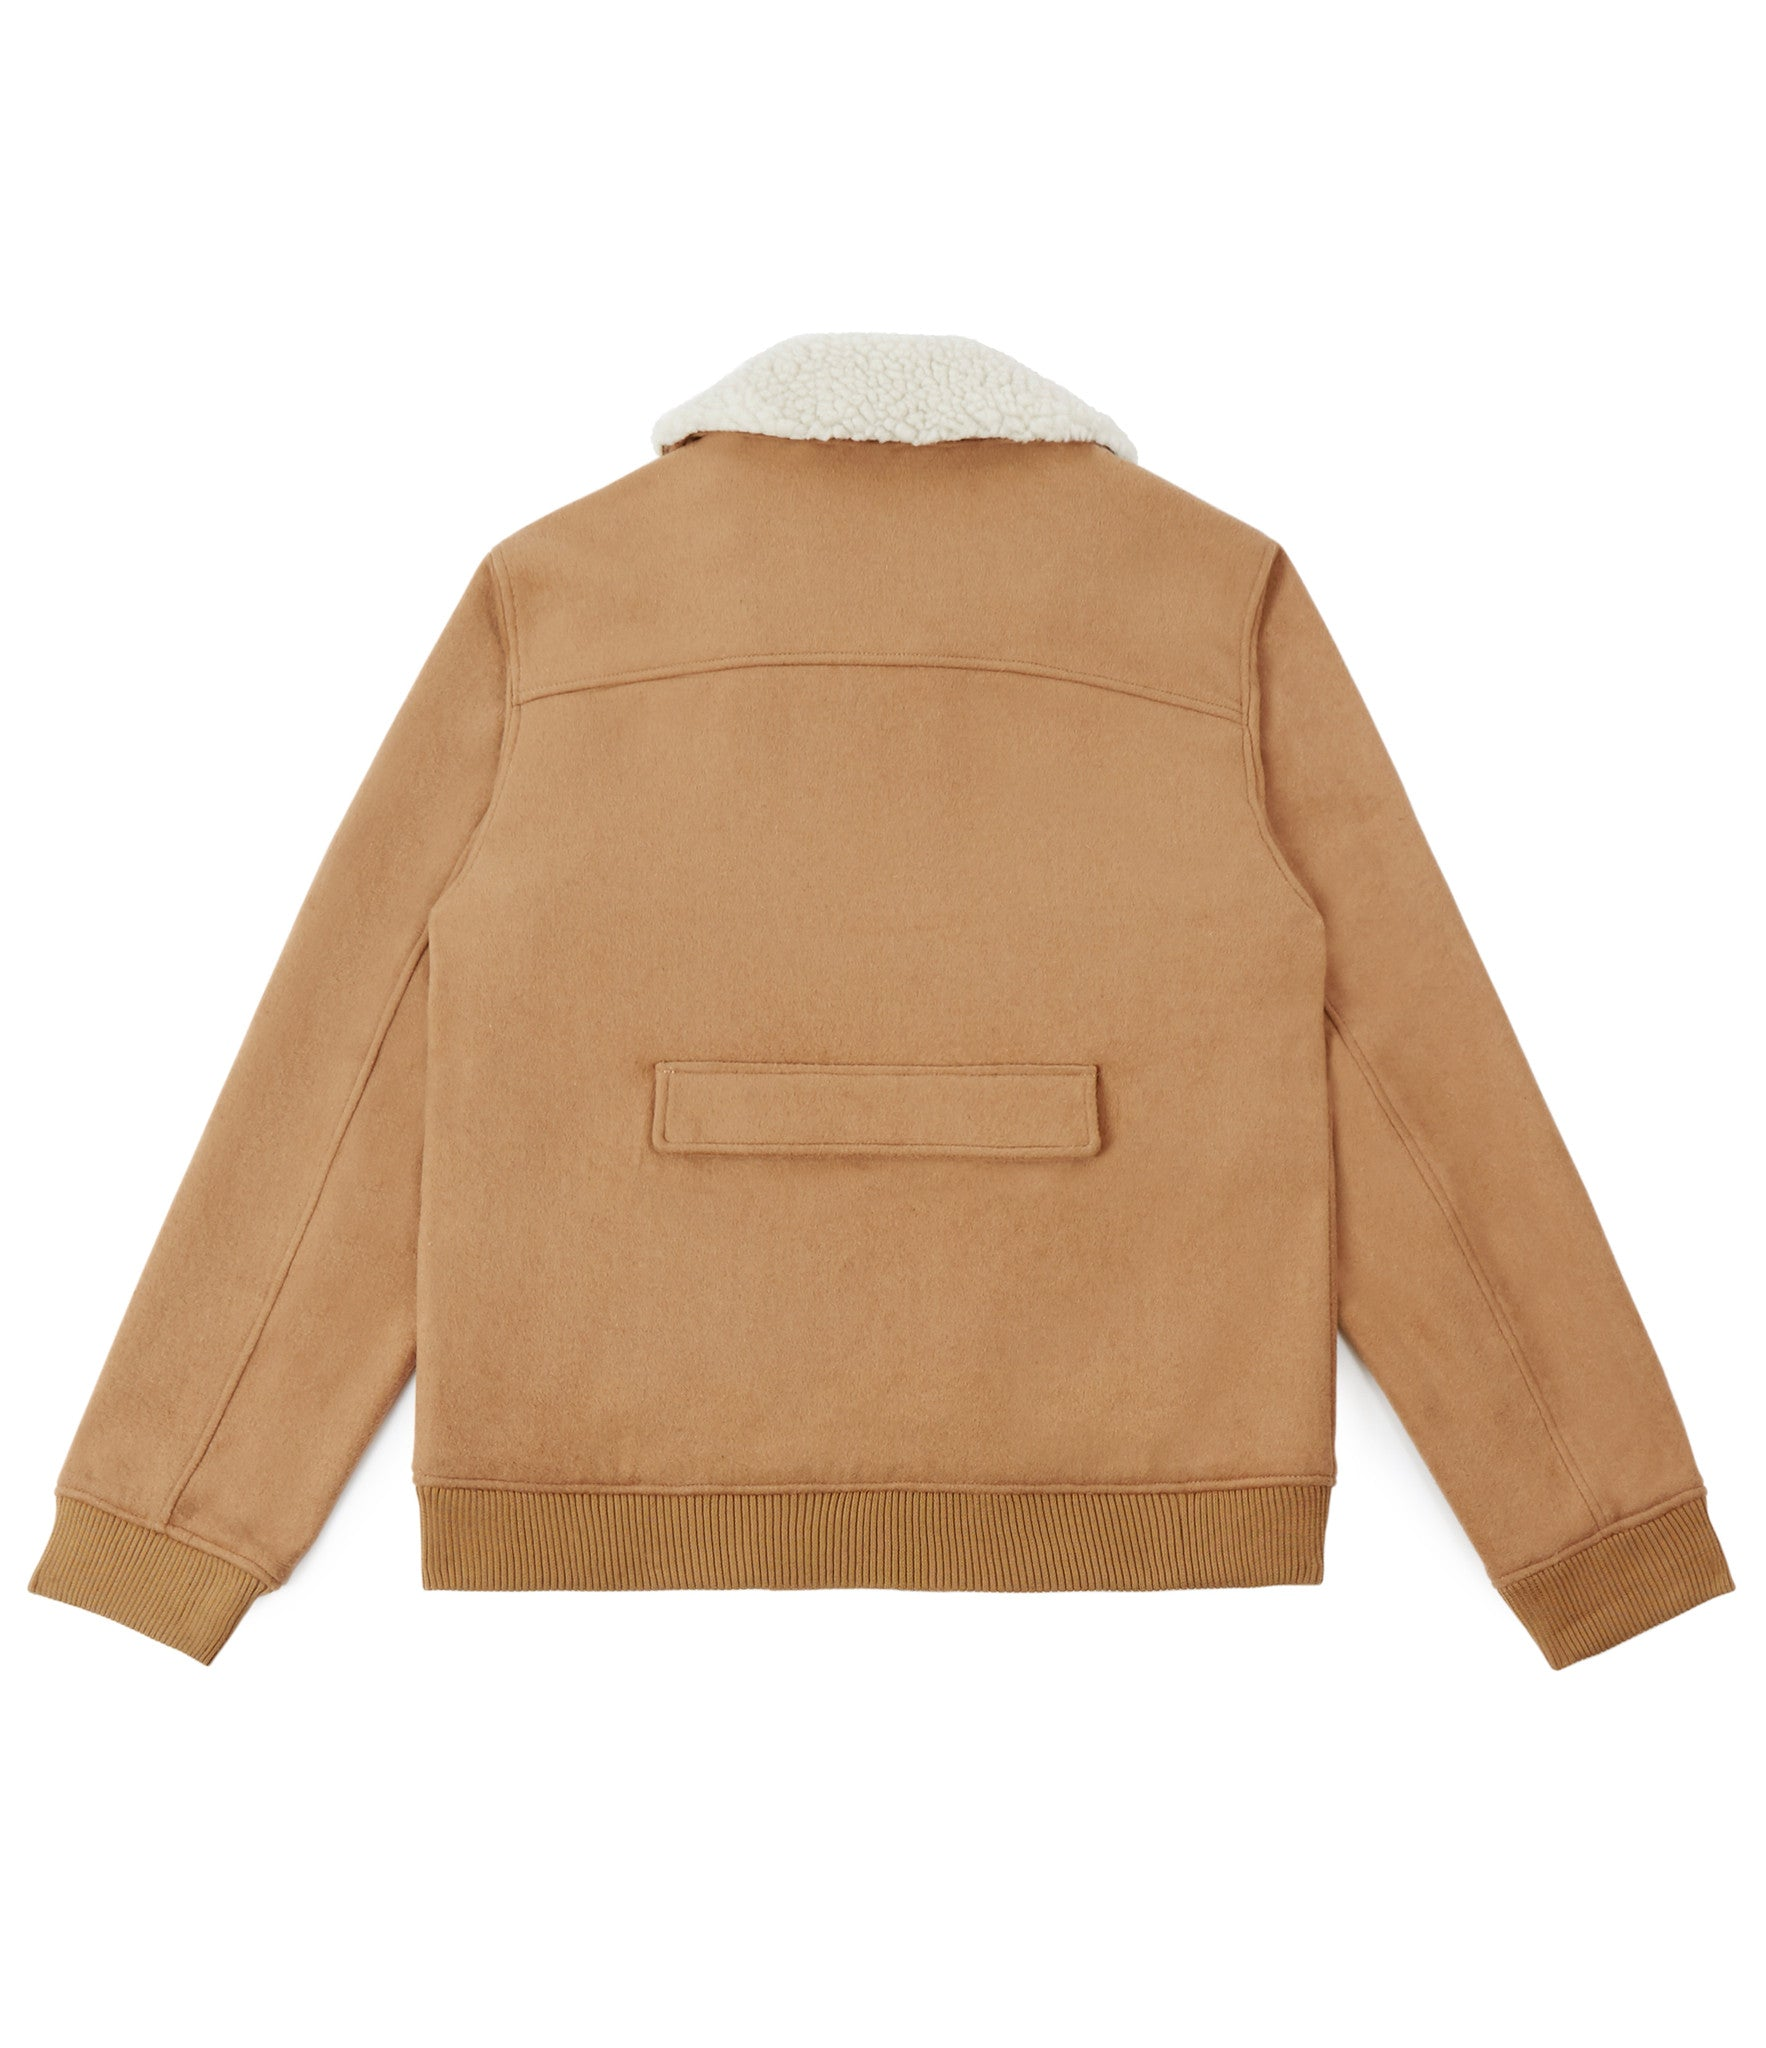 BM20 Shearling-Trimmed Wool Jacket - Camel - underated london - underatedco - 3